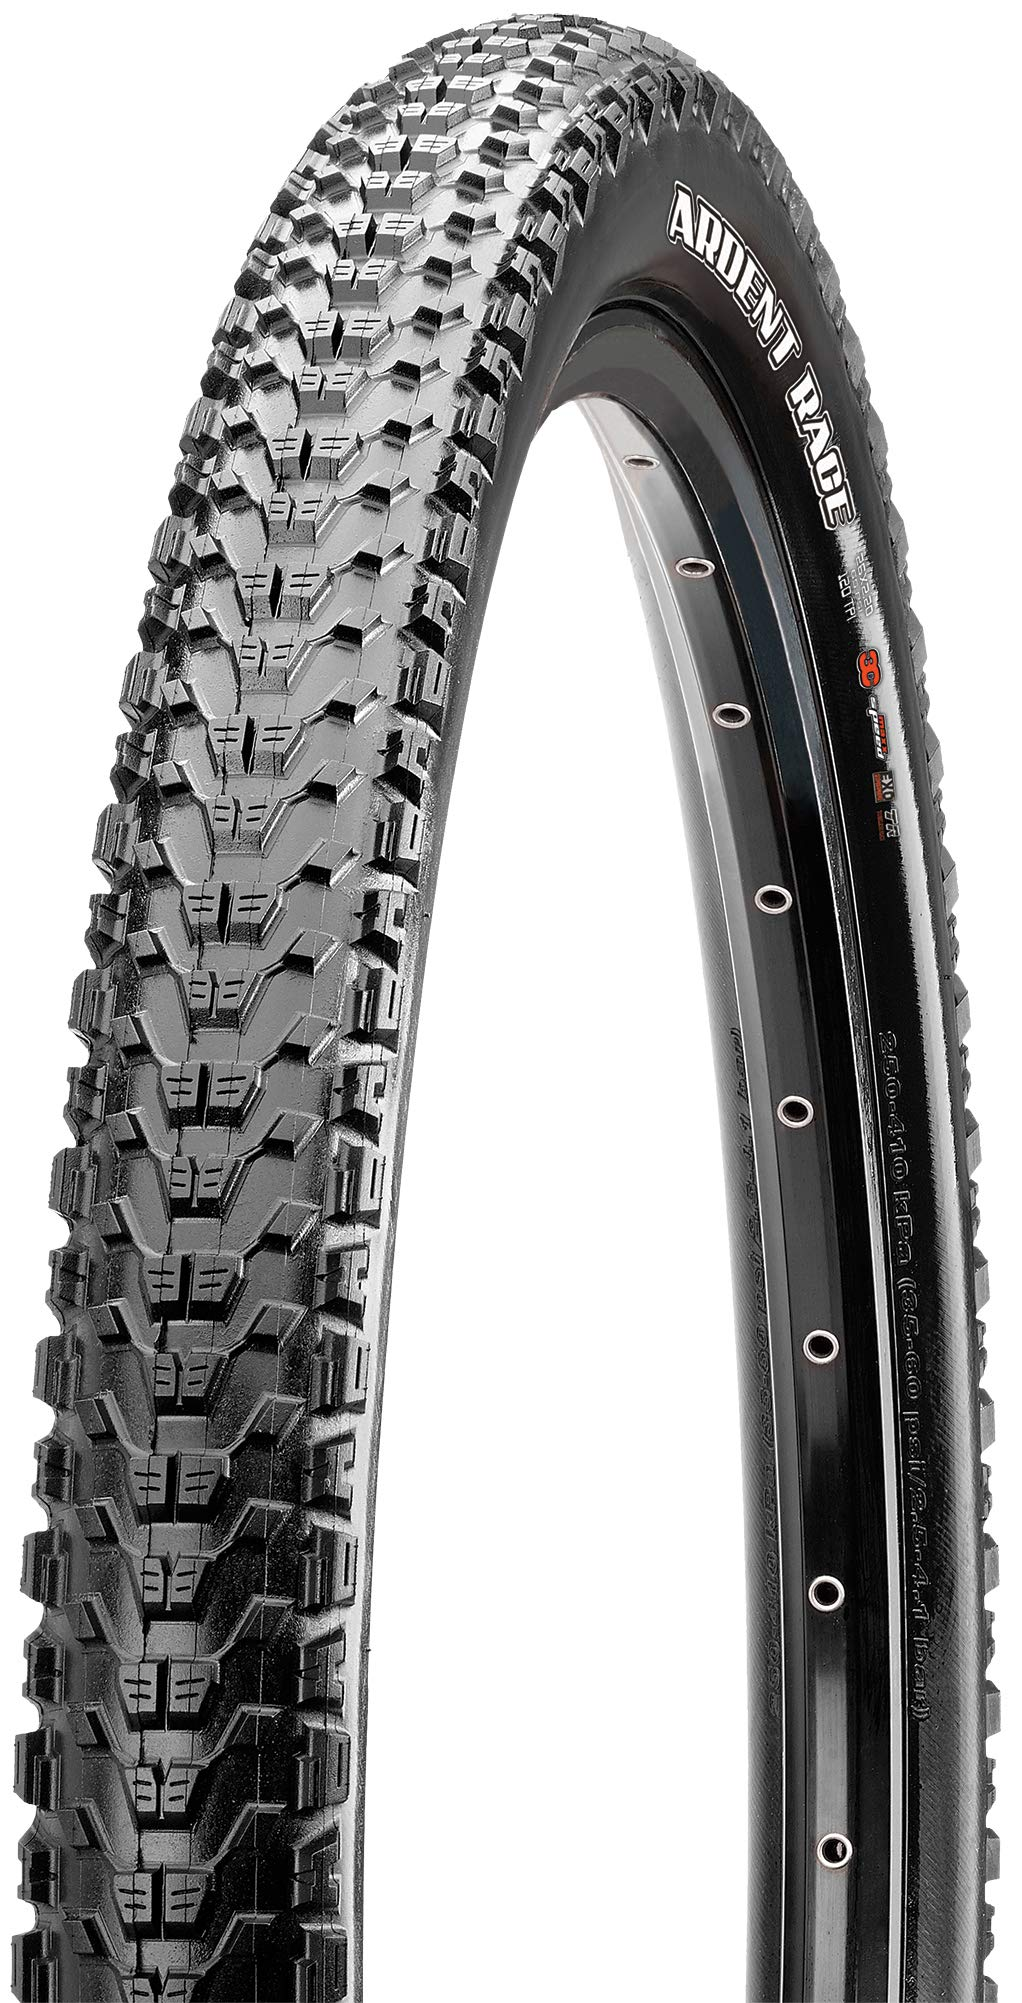 Maxxis EXO Double Compound Ardent Folding Tire, 27.5 x 2.4-Inch